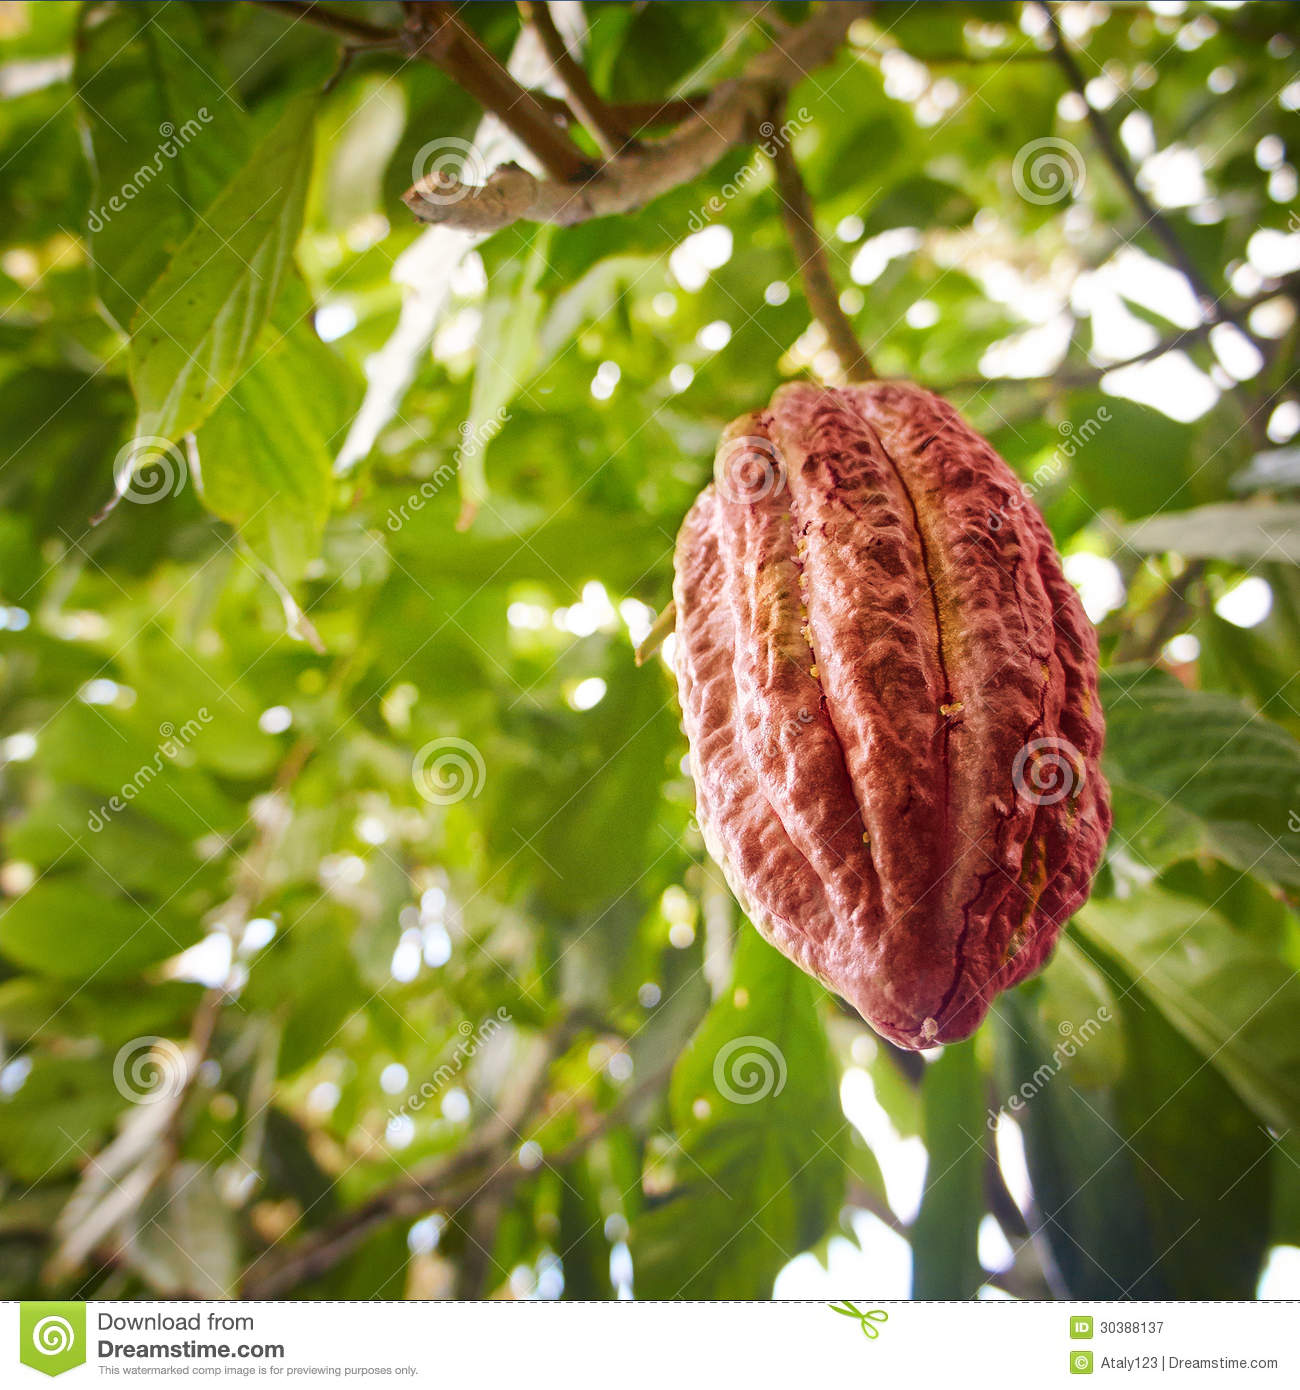 Growing Cocoa Bean Stock Image. Image Of Cultivation